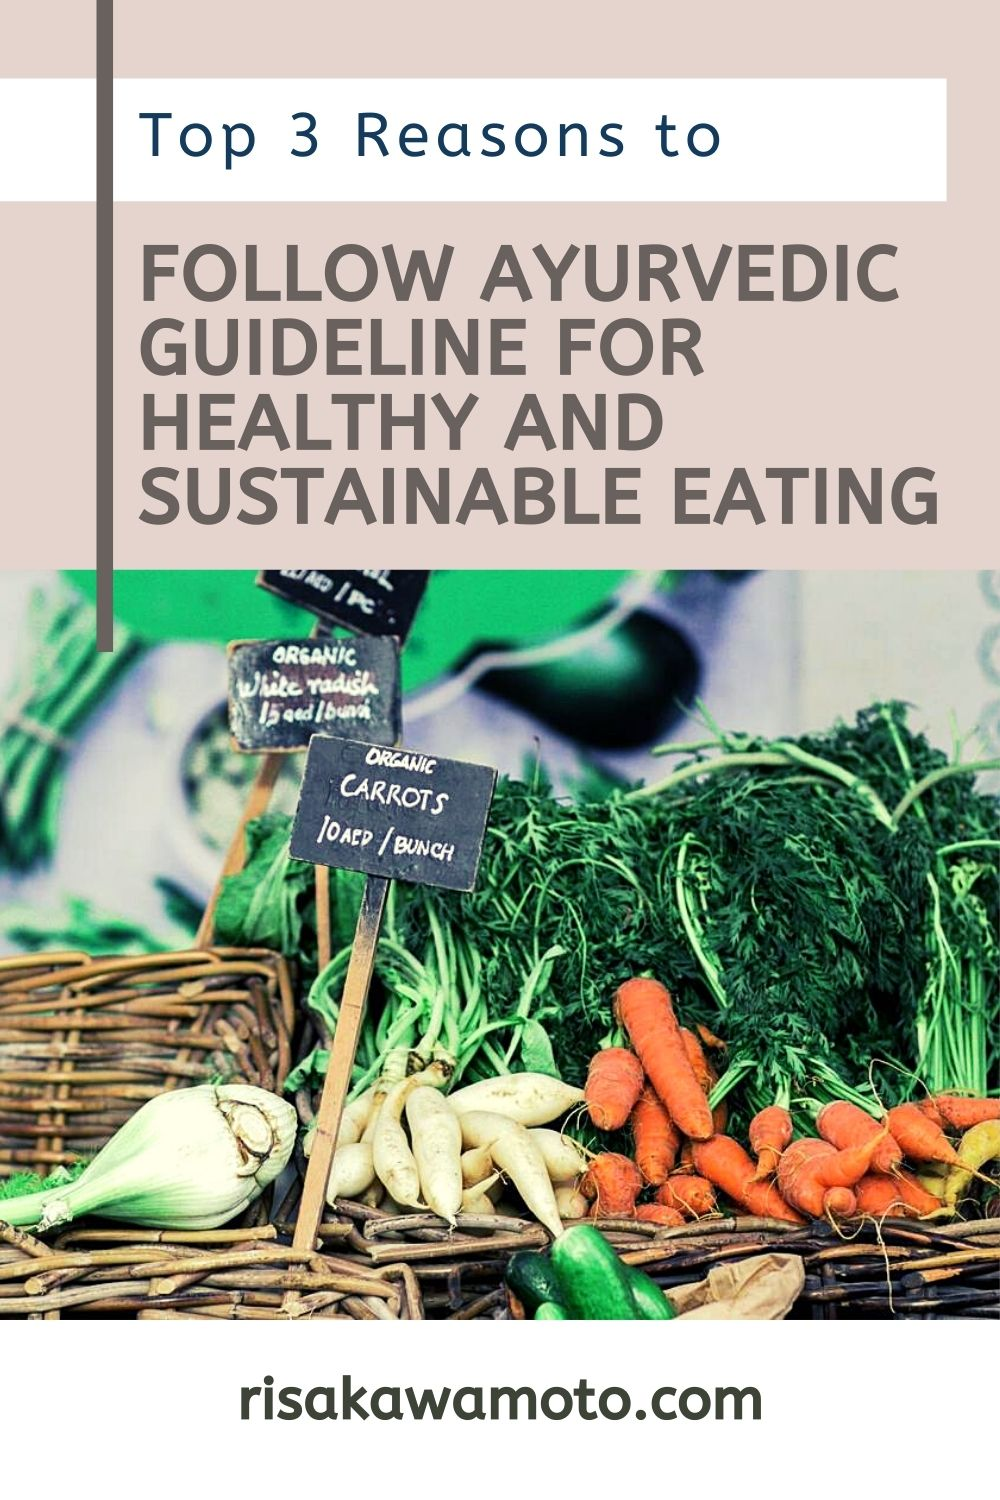 Top 3 Reasons to Follow Ayurvedic Guidelines for Healthy & Sustainable Eating